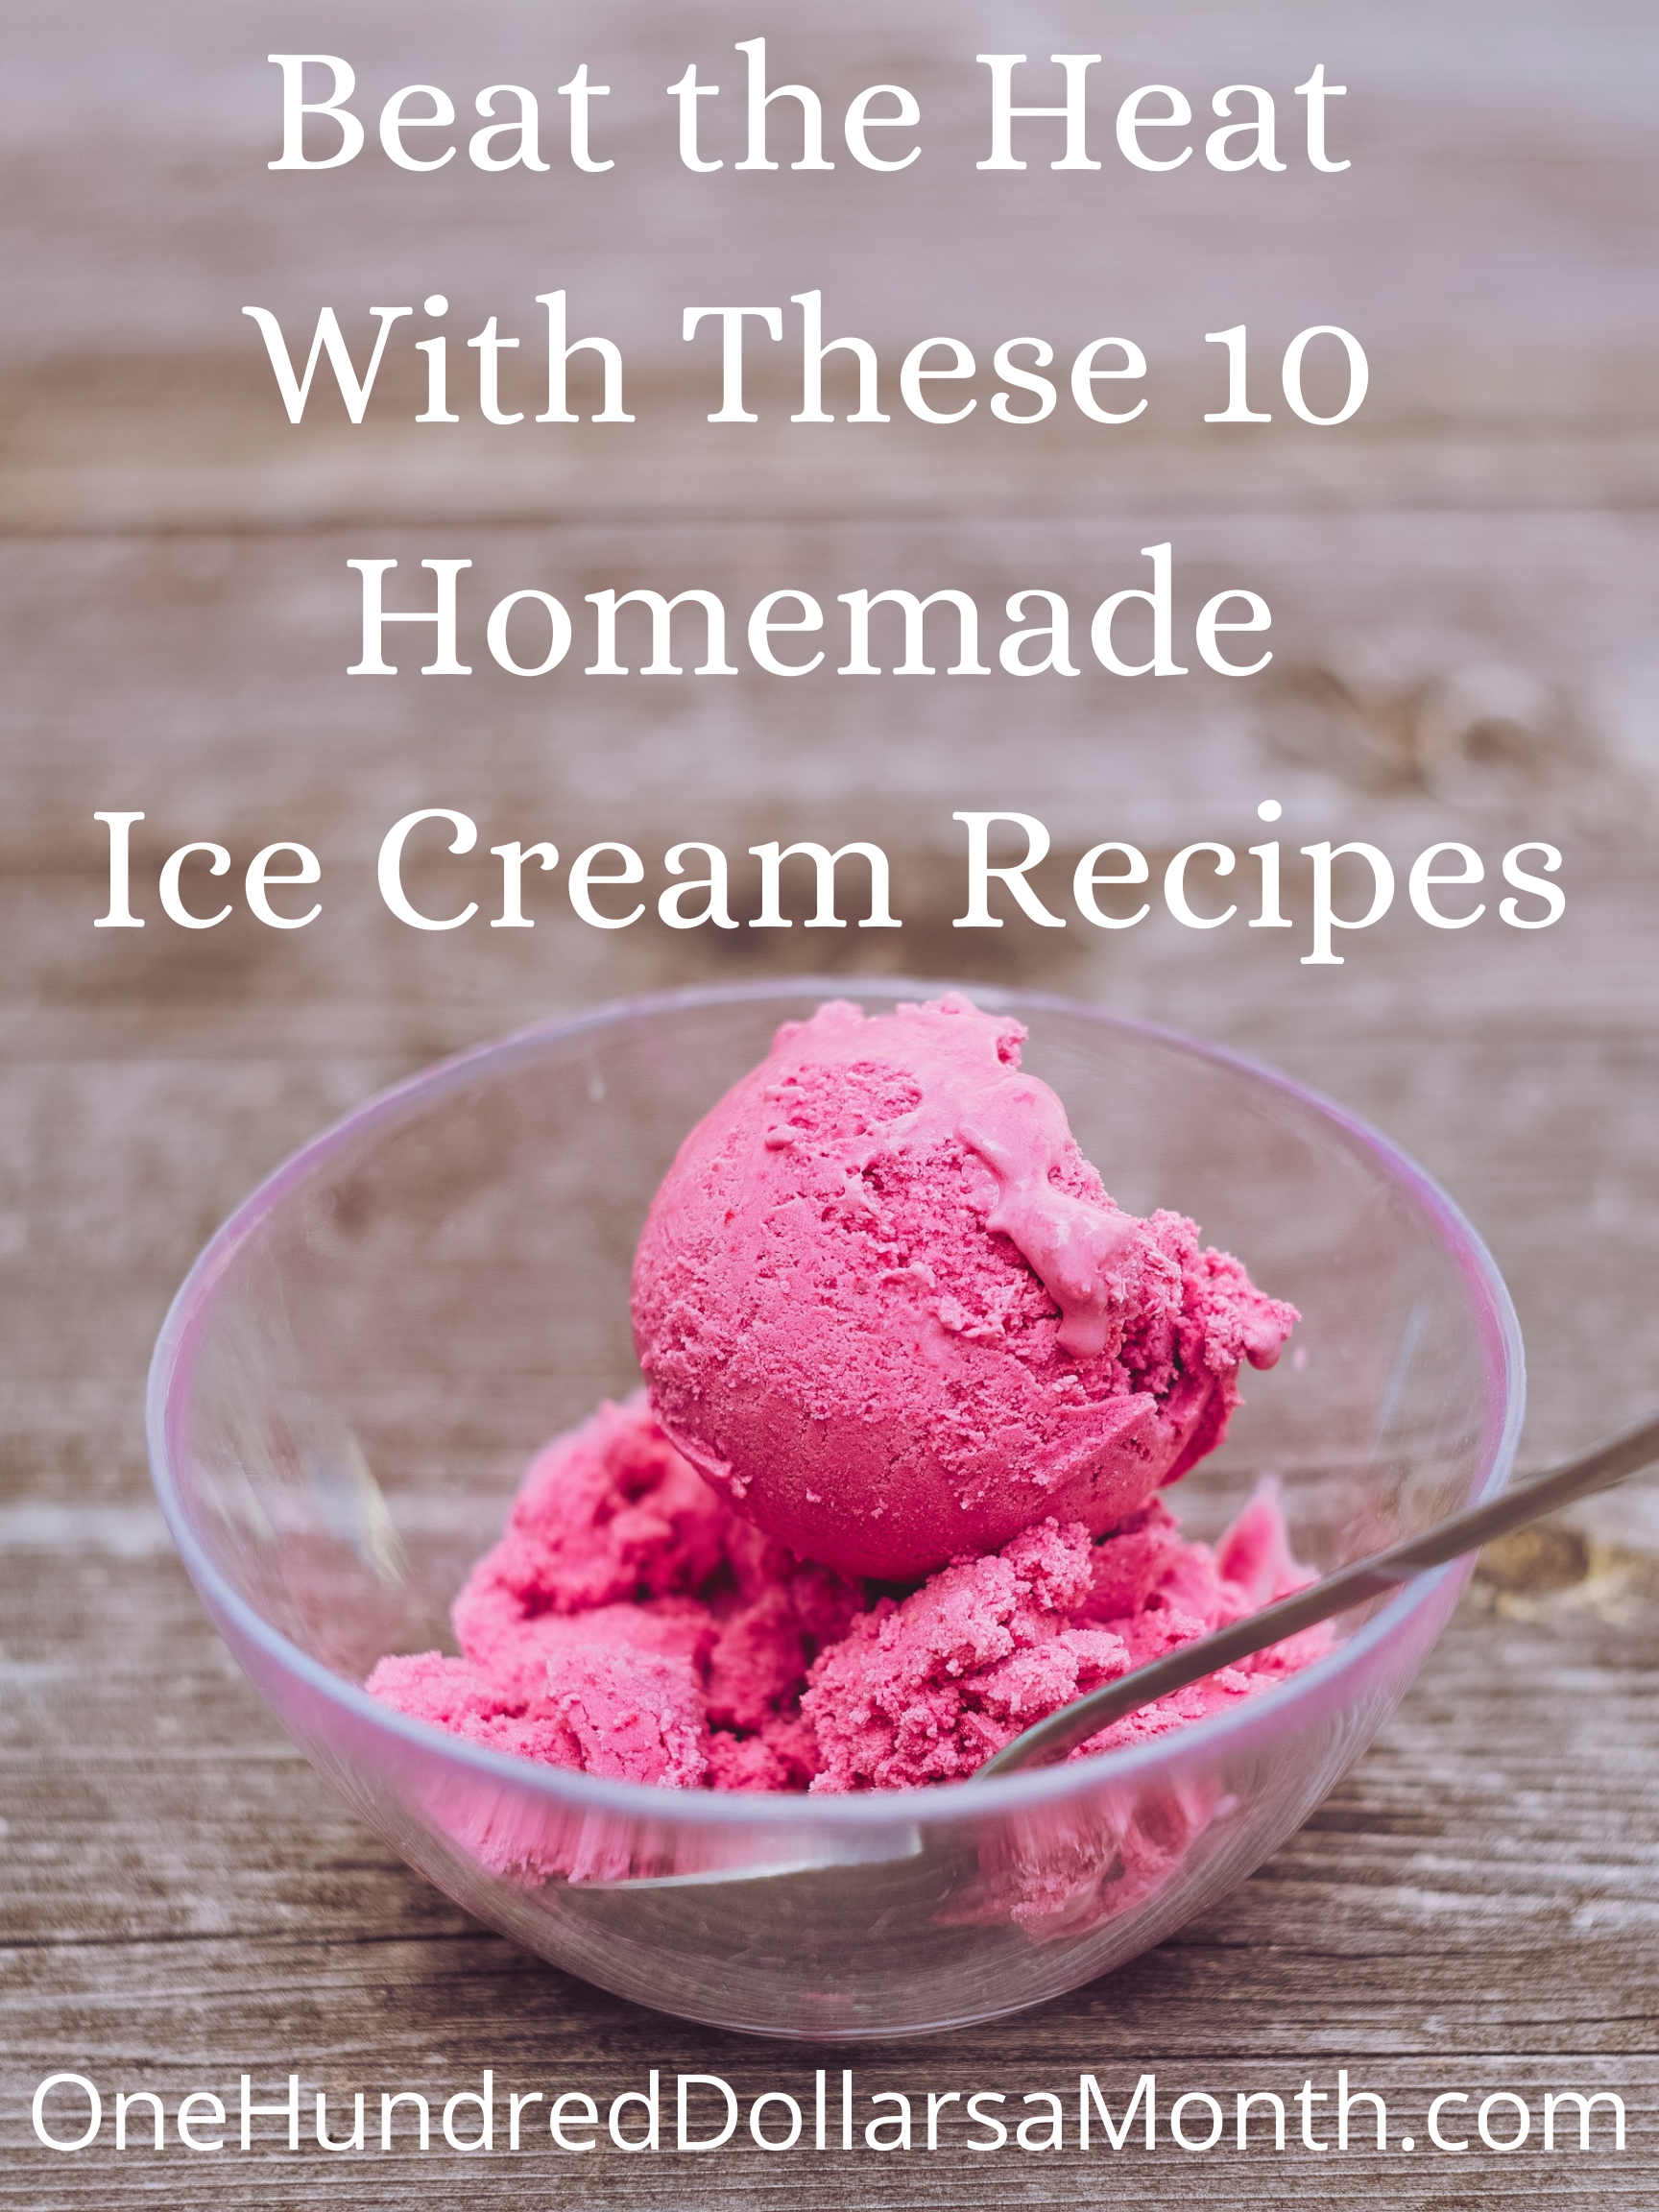 Beat the Heat With These 10 Homemade Ice Cream Recipes